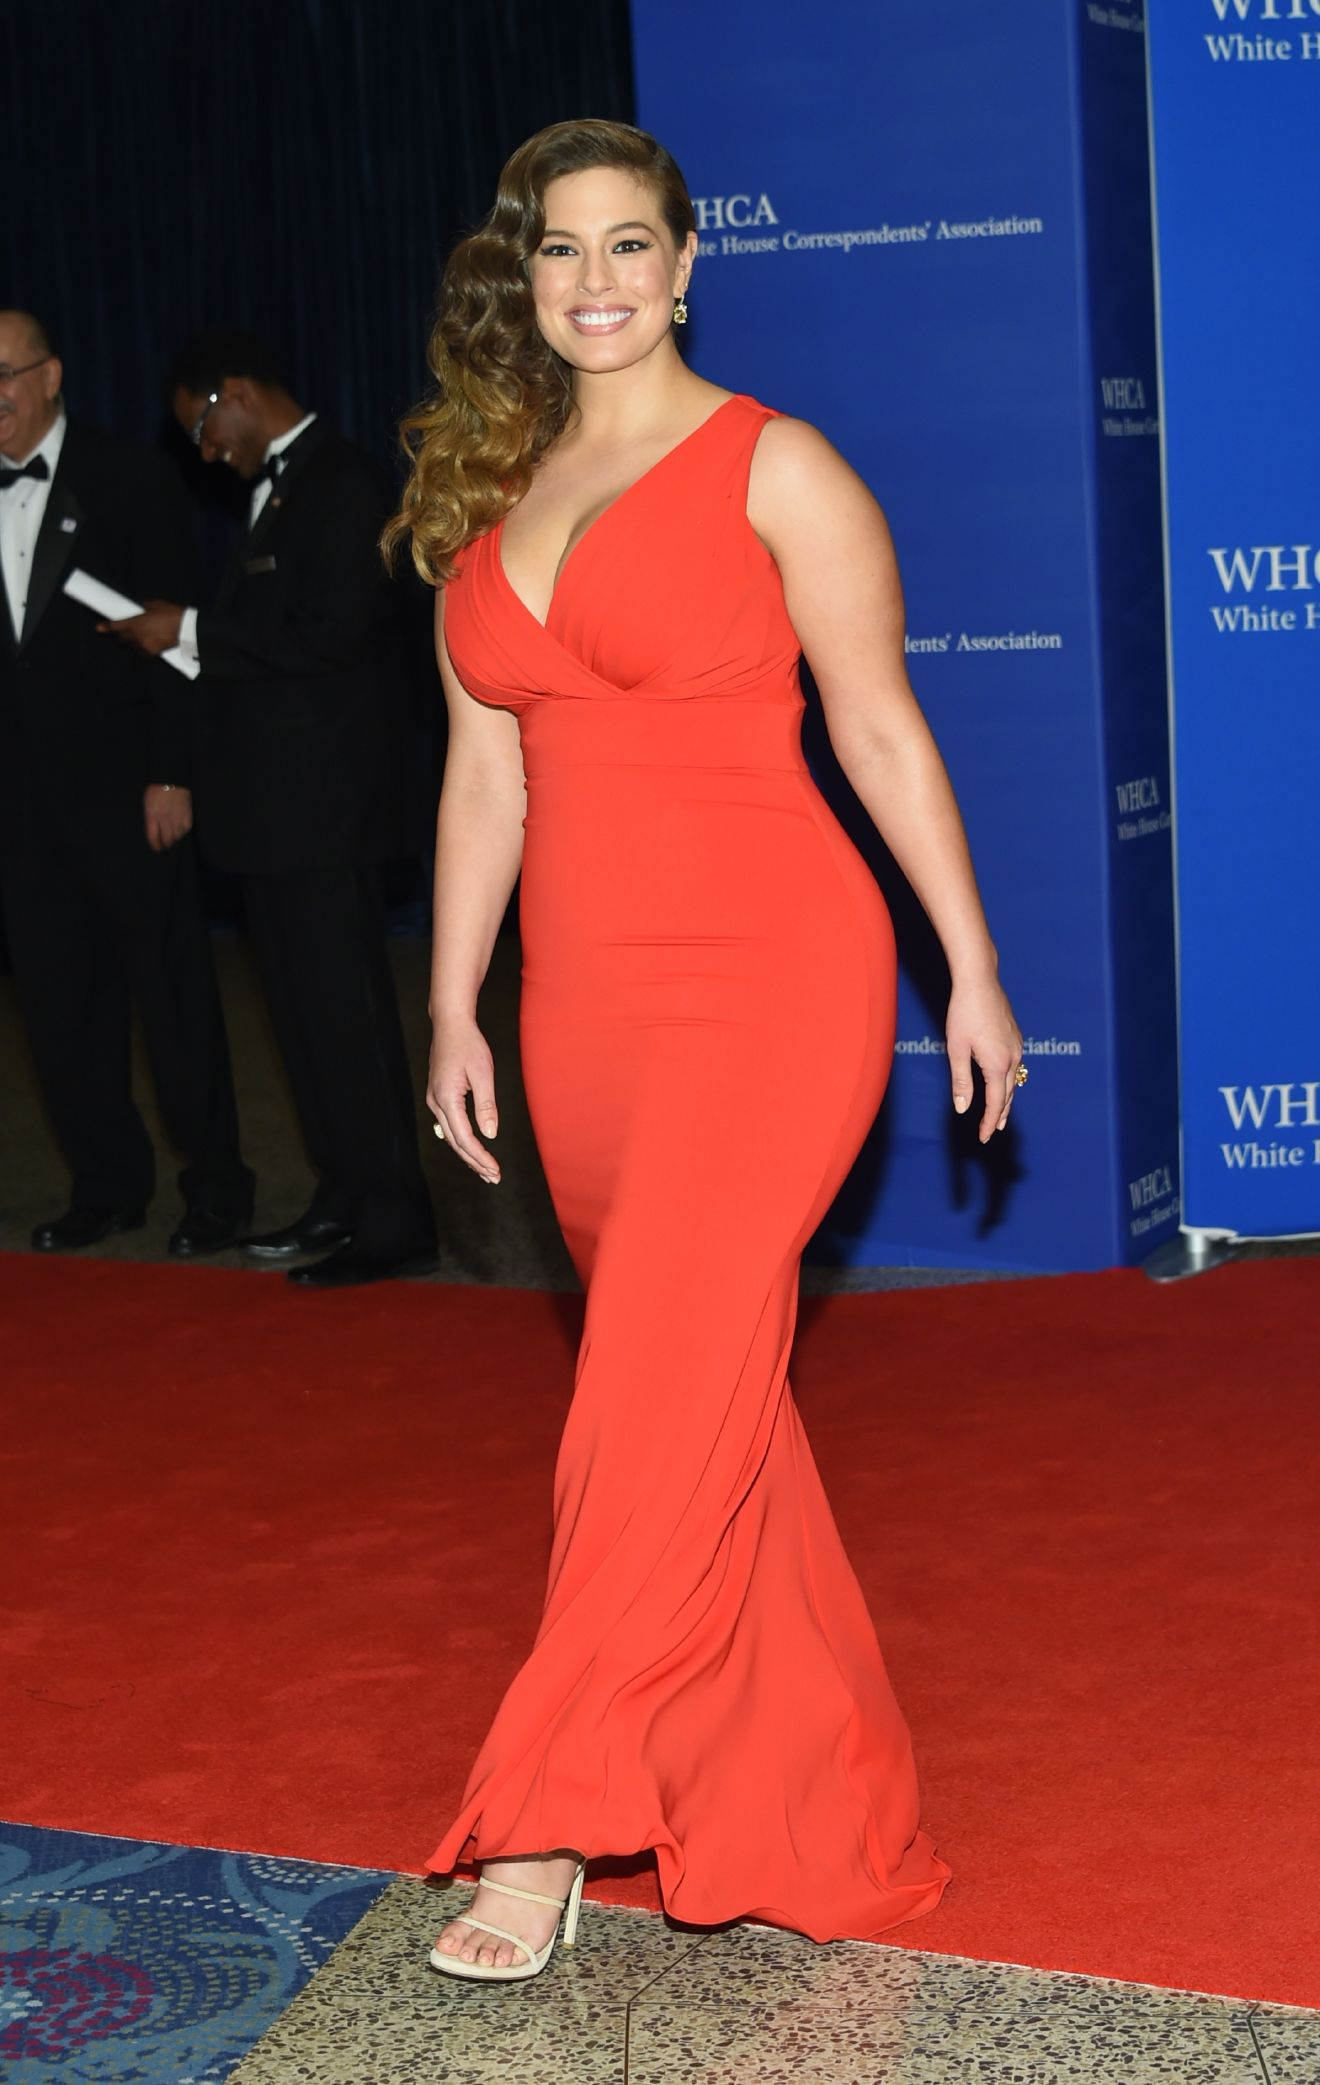 Ashley Graham arrives at the White House Correspondents' Association Dinner at the Washington Hilton Hotel on Saturday, April 30, 2016, in Washington. (Photo by Evan Agostini/Invision/AP)